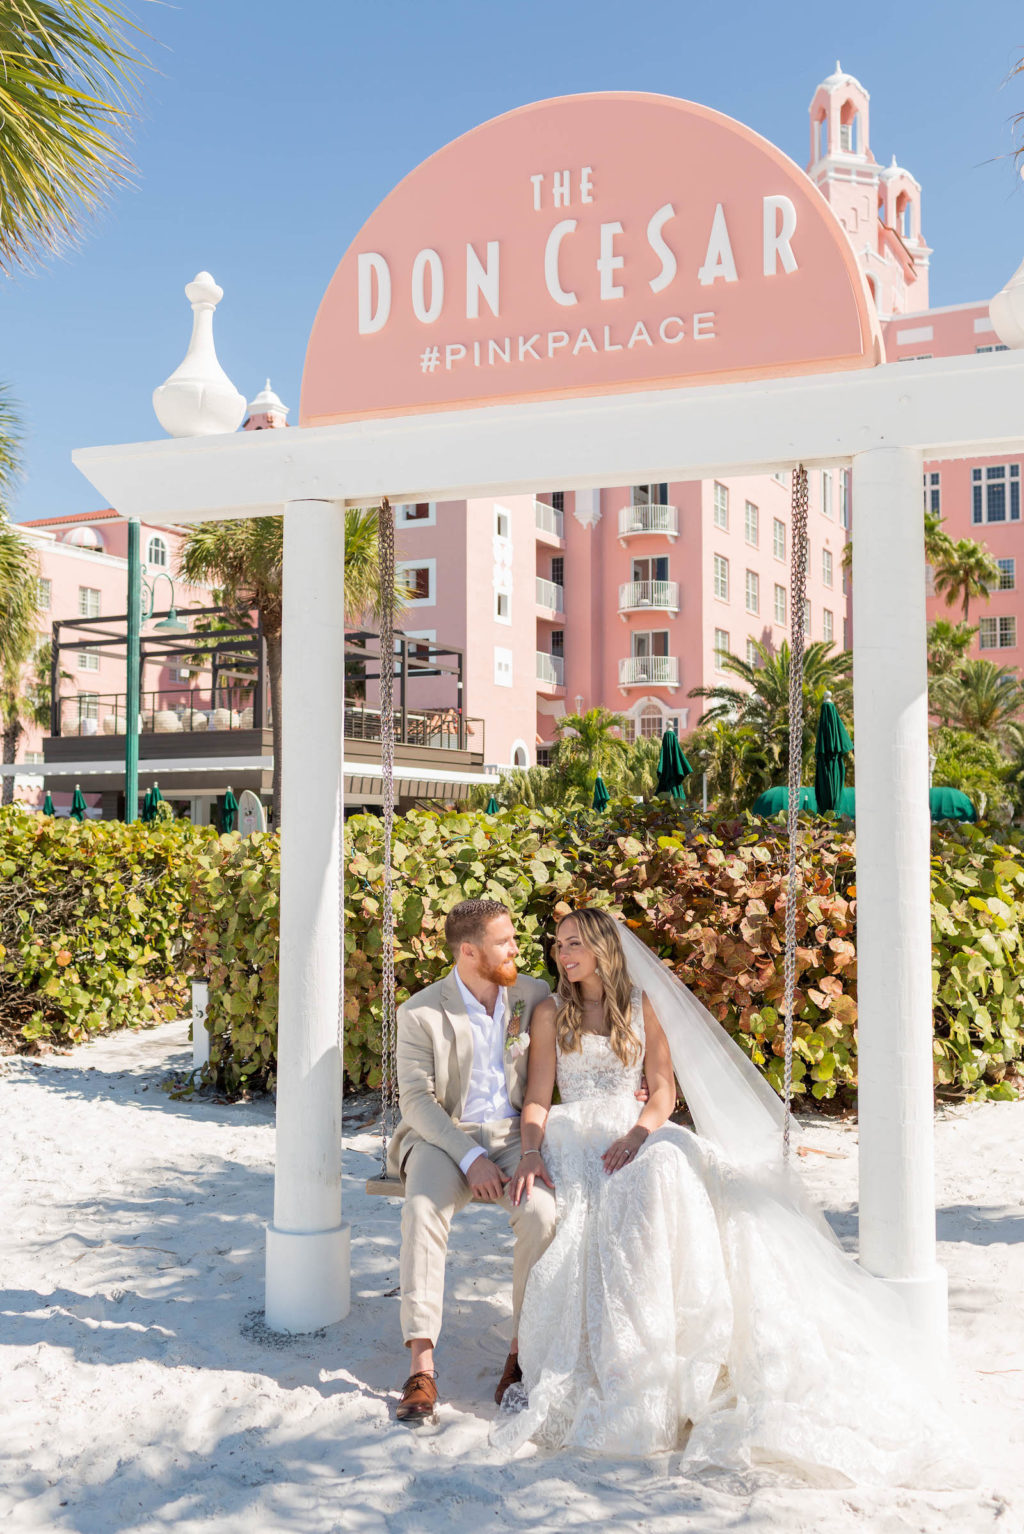 Bride and Groom Outdoor Portrait on Beach Swing at St. Pete Beach Wedding Venue The Don CeSar Pink Palace | Monique Lhuillier Designer Wedding Dress A Line Ballgown Lace Bridal Gown | Groom Wearing Casual Khaki Suite